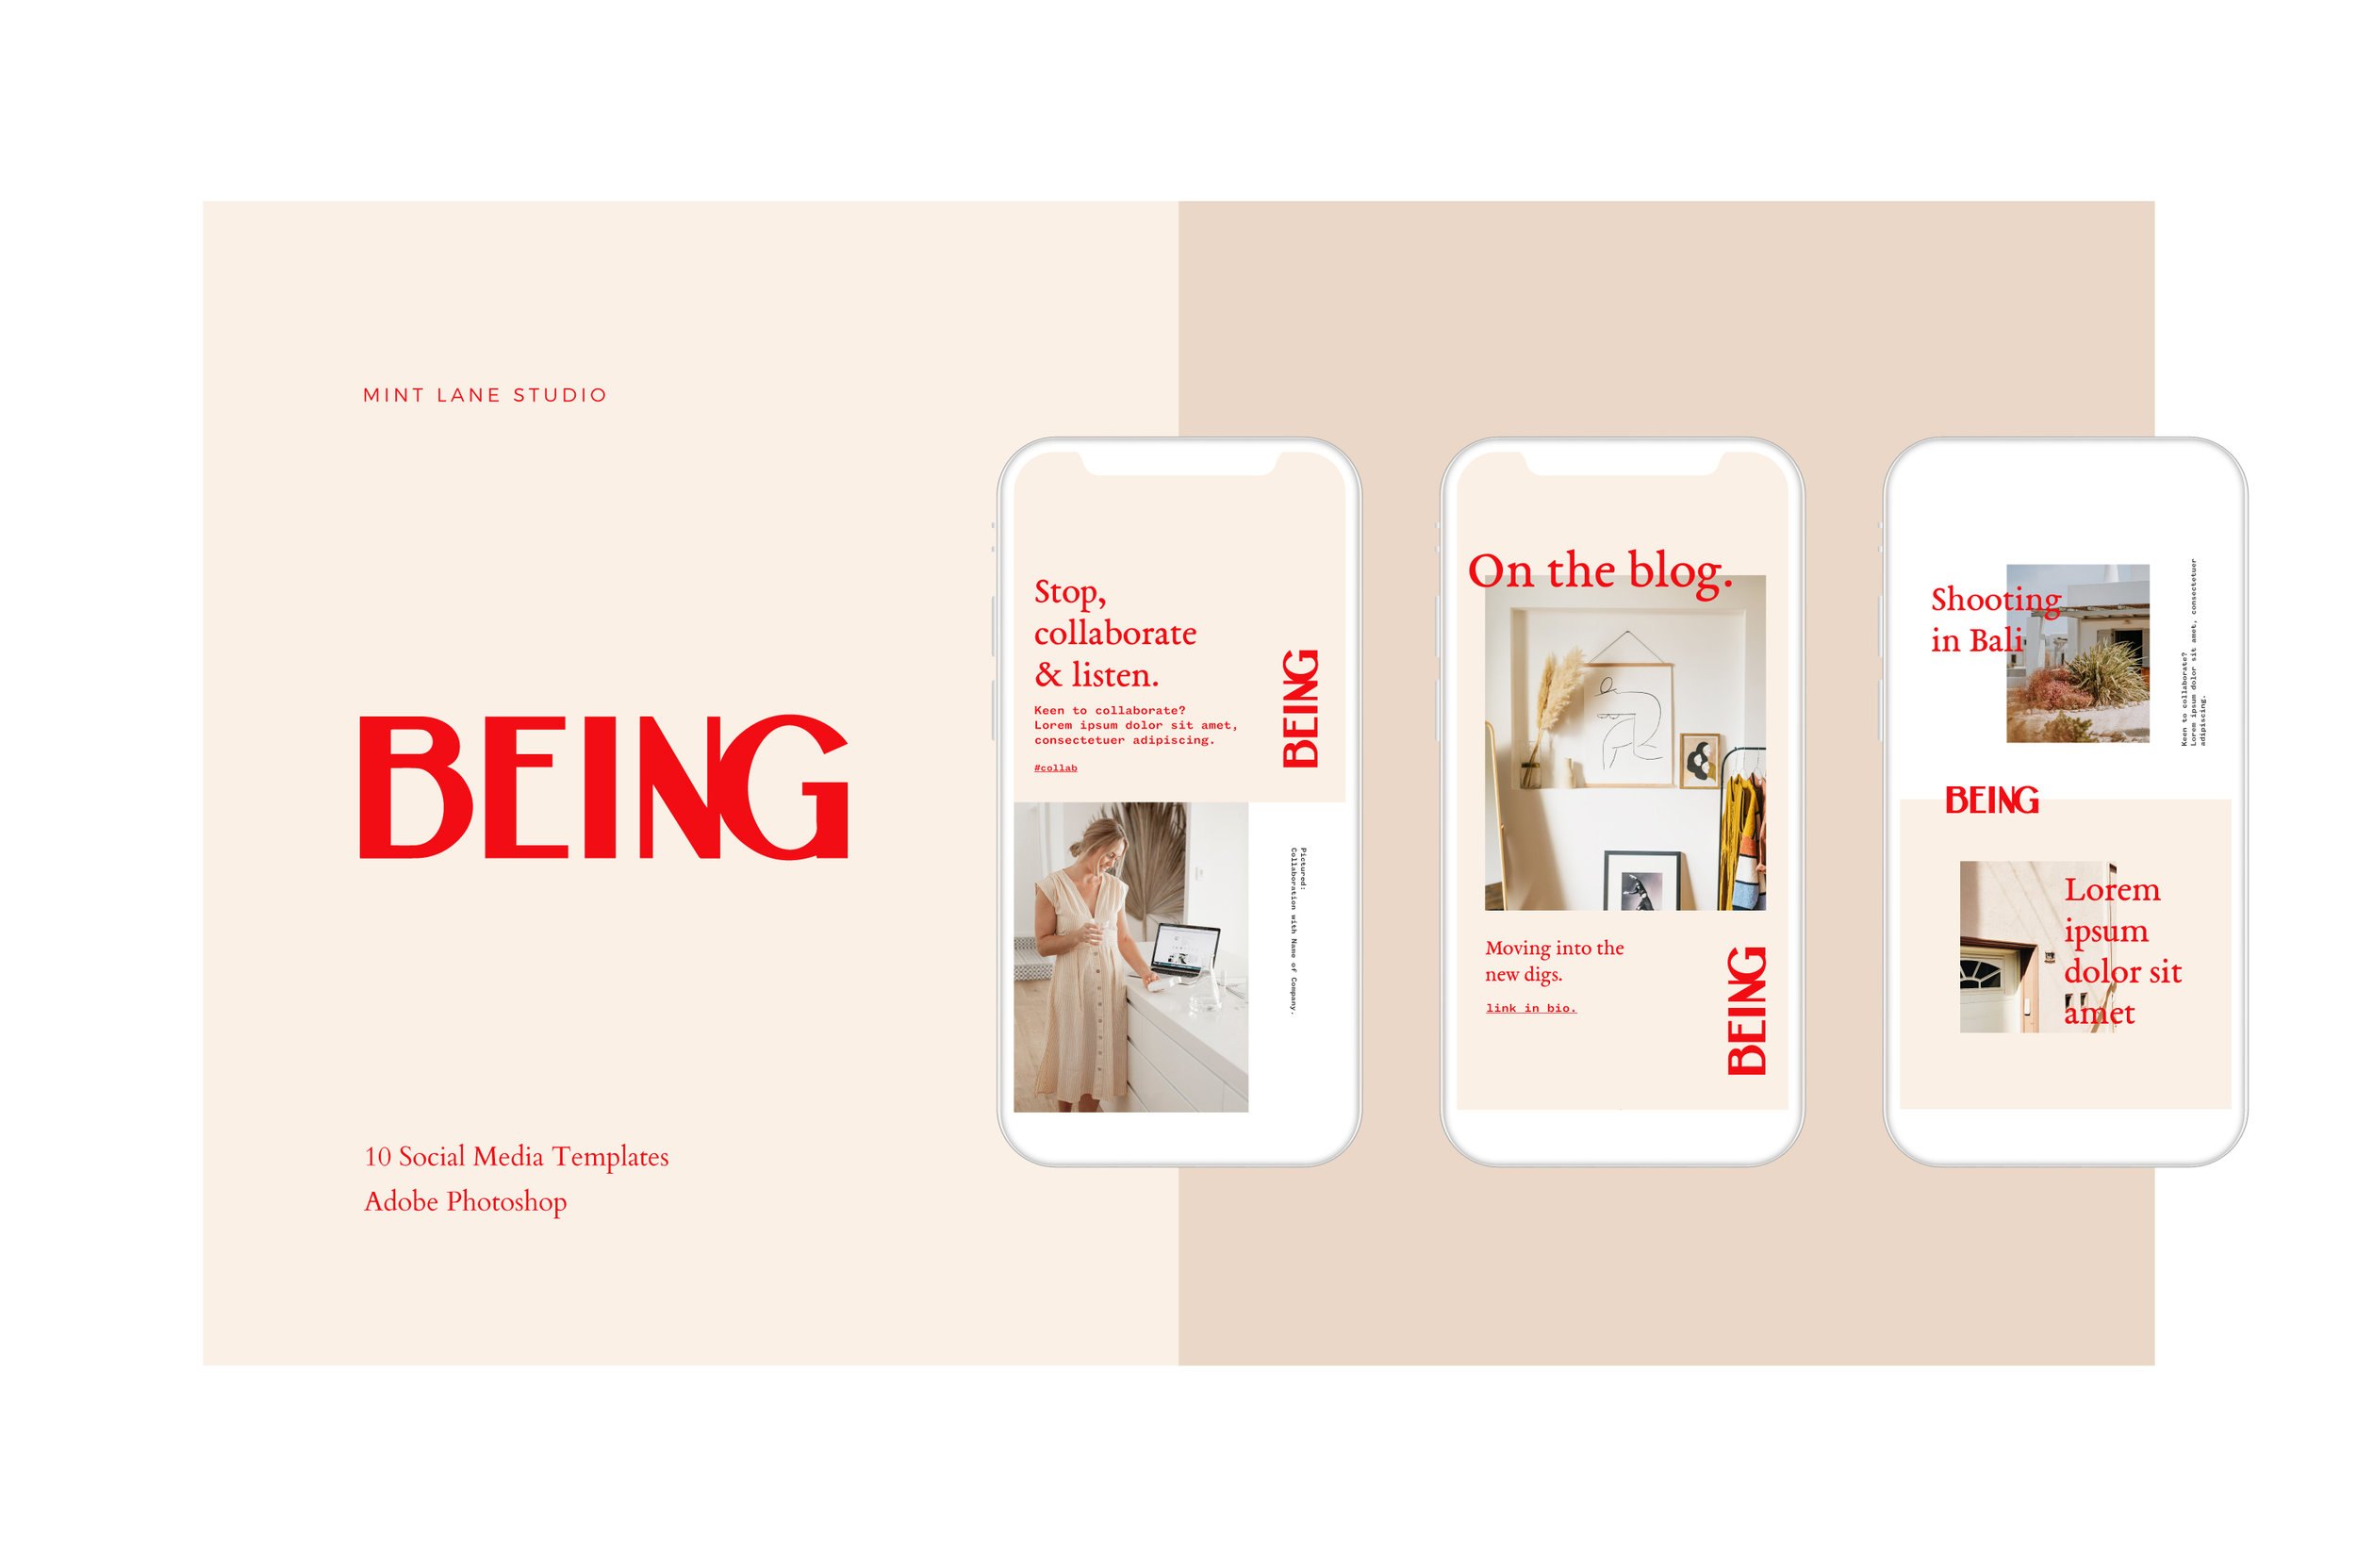 Being-Insta-template-cover.jpg